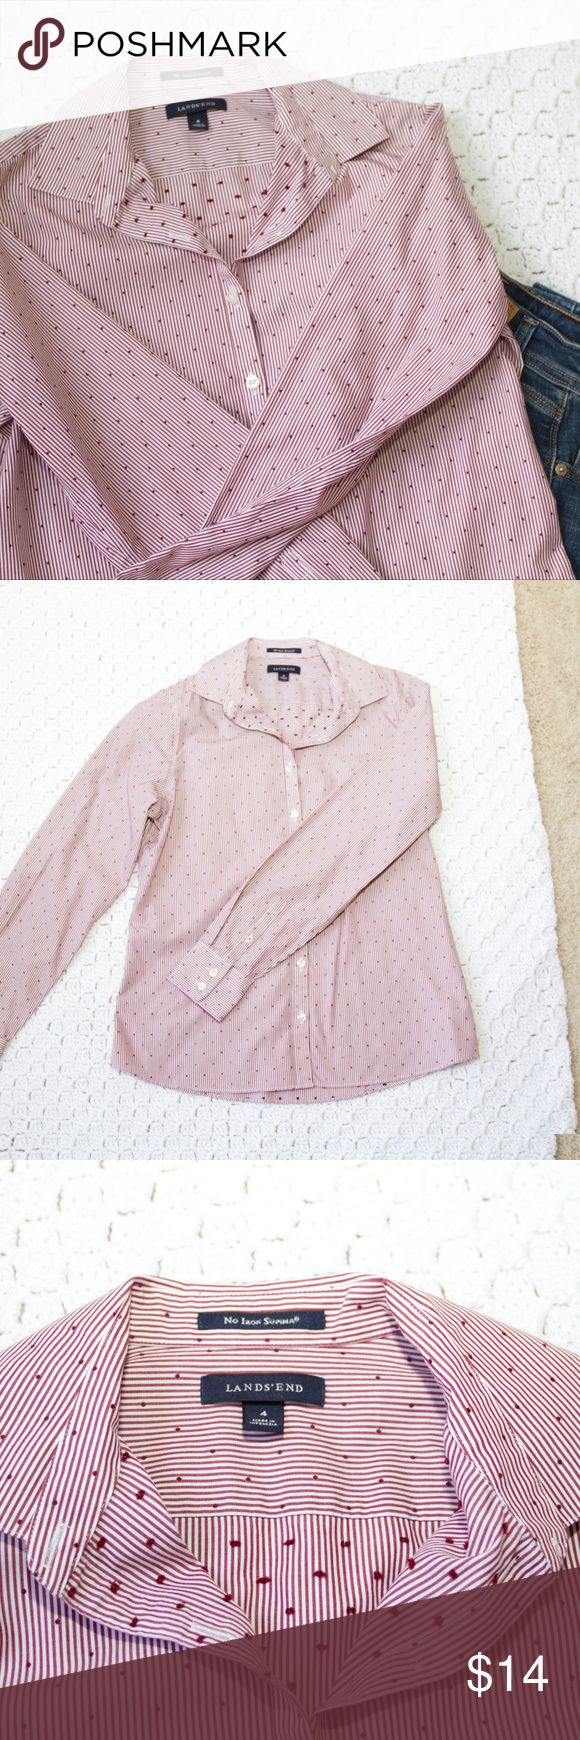 """Lands End Burgundy Striped Button Shirt Size 4 Lands End burgundy and white striped and dotted long sleeve button down shirt, size. """"No Iron Supima"""" -- 100% Supima cotton. Excellent condition. Smoke free home. Bundle with the other Lands End' button shirt for an offer!  Approximately 19"""" wide under arms, 24"""" shoulder to hem. Lands' End Tops Button Down Shirts"""